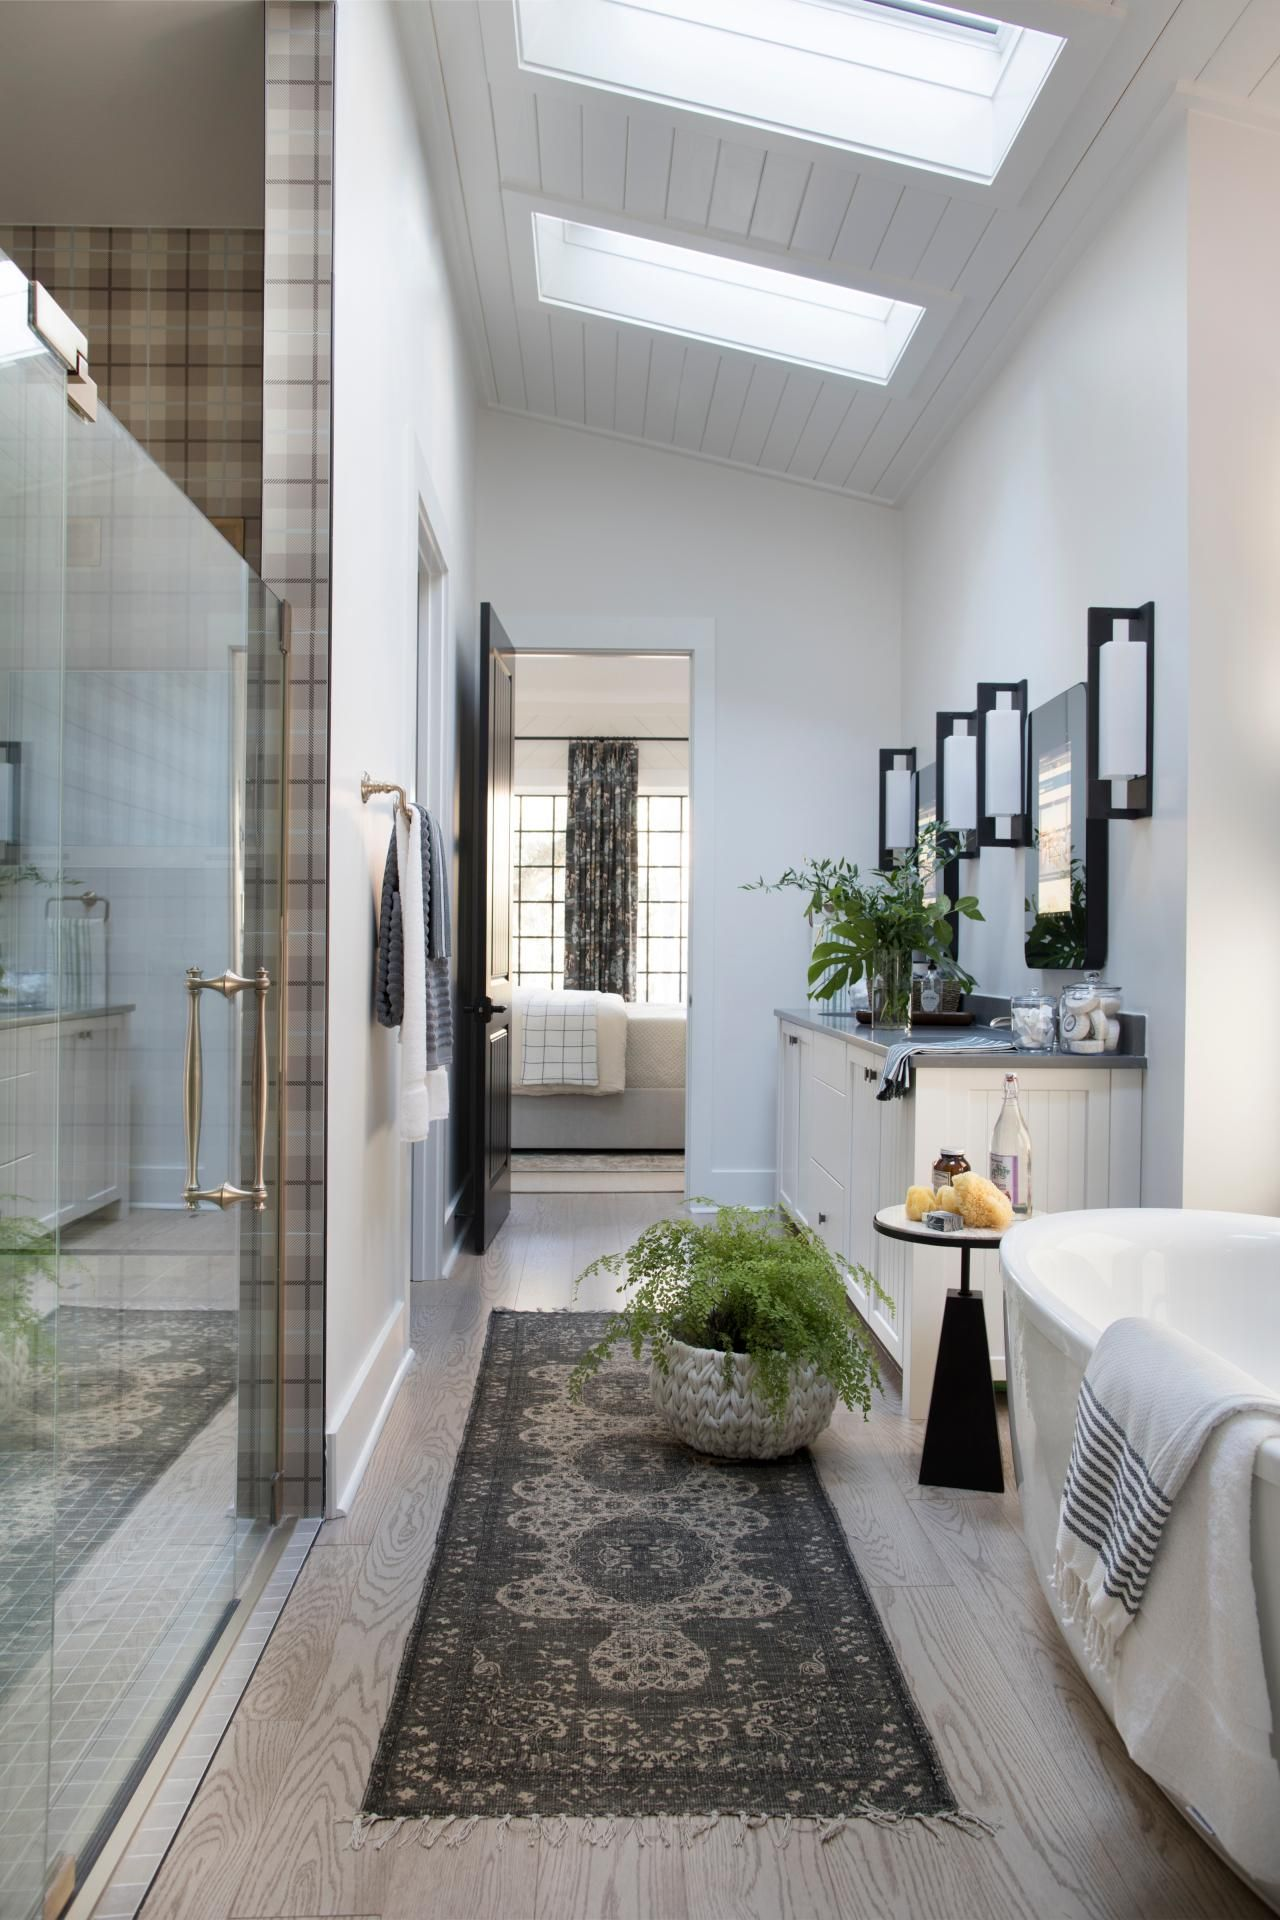 Pick Your Favorite Space from HGTV Smart Home 2018 | HGTV ... Hgtv Smart Home Design on logo smart home, xfinity home, disney smart home, one smart home, g4 smart home, building zero energy home, design smart home, family smart home, home smart home, ikea smart home,